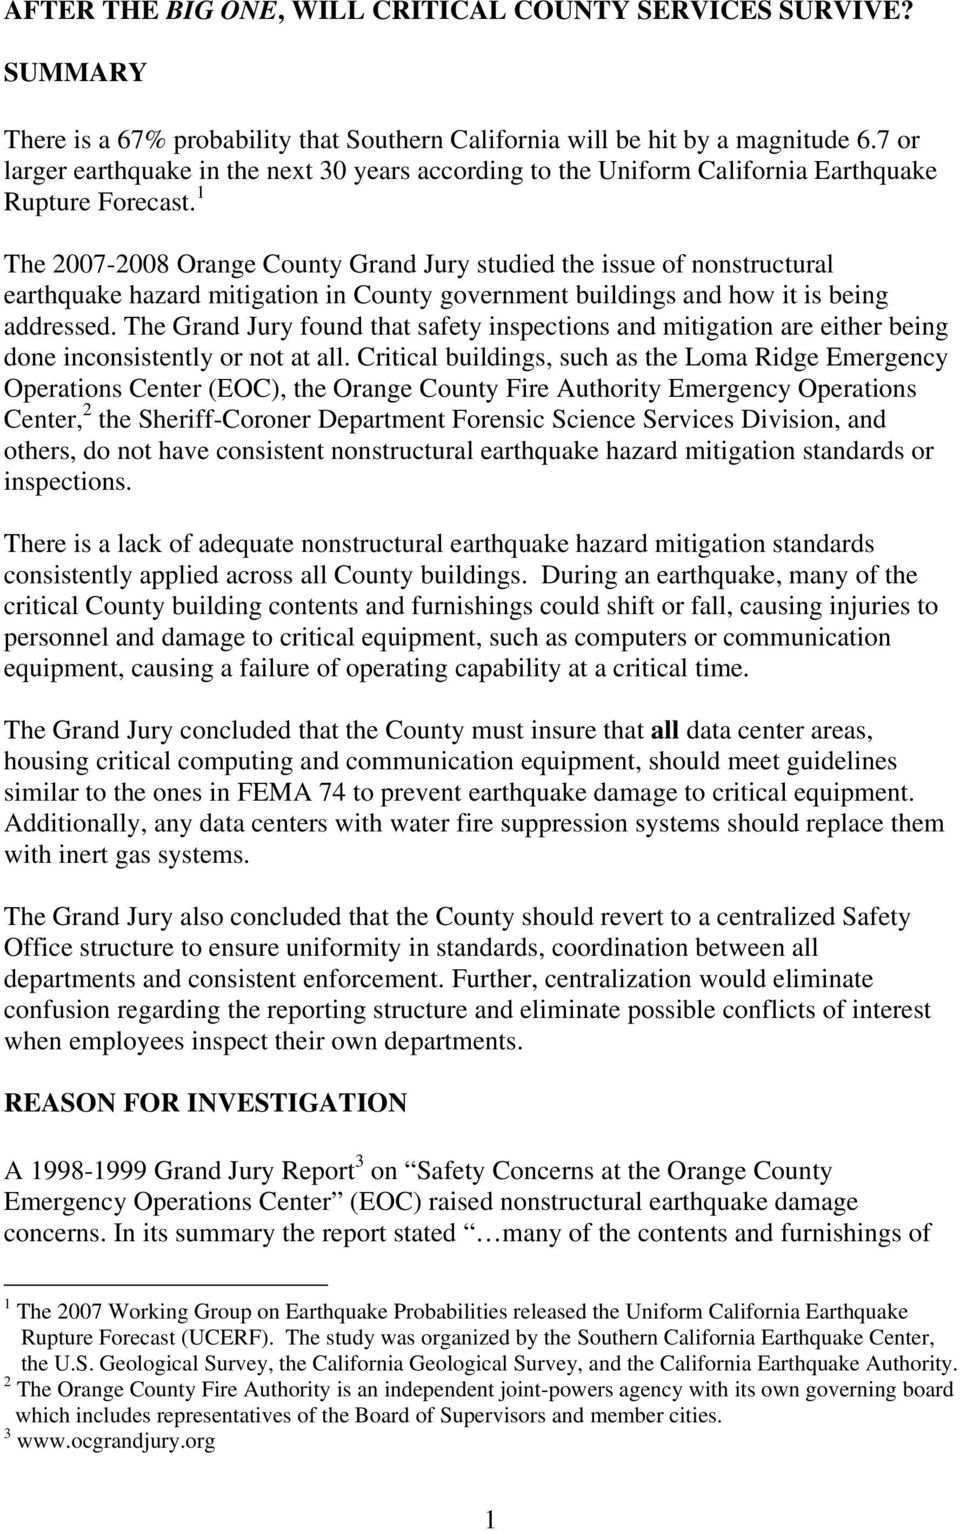 1 The 2007-2008 Orange County Grand Jury studied the issue of nonstructural earthquake hazard mitigation in County government buildings and how it is being addressed.